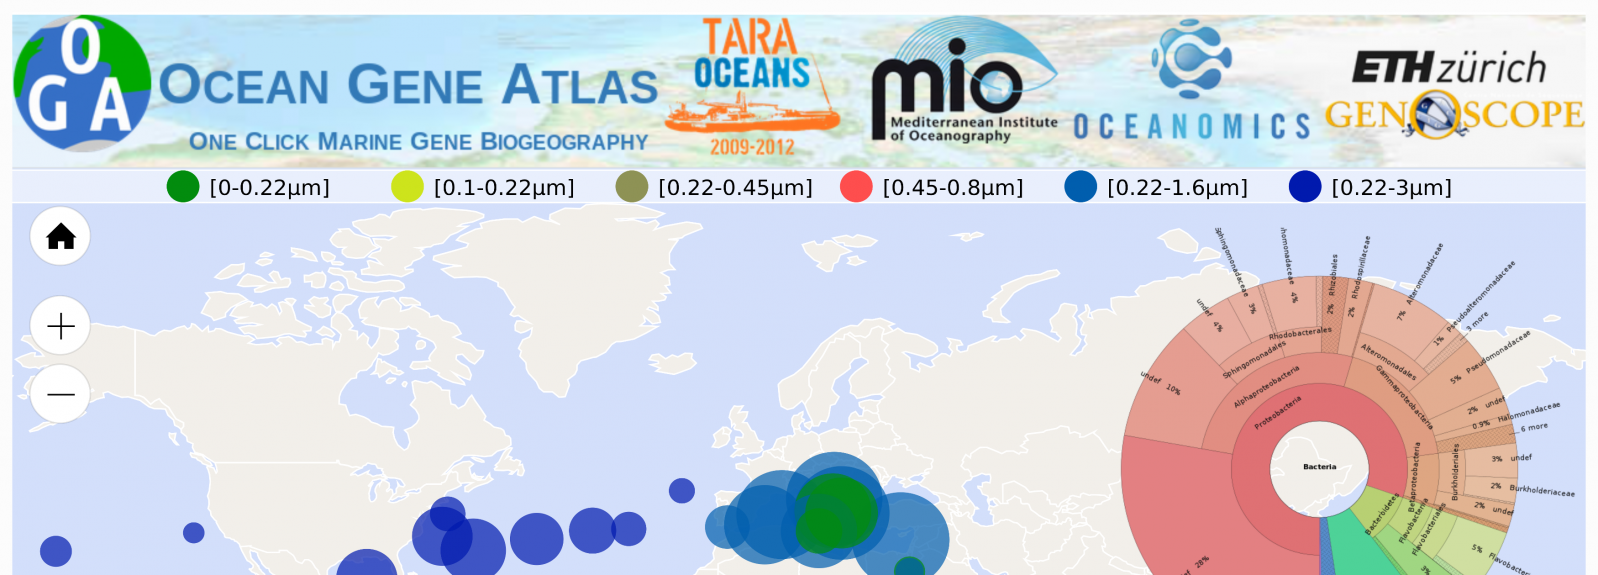 Ocean Gene Atlas, explore marine Big Data with nothing but a web browser